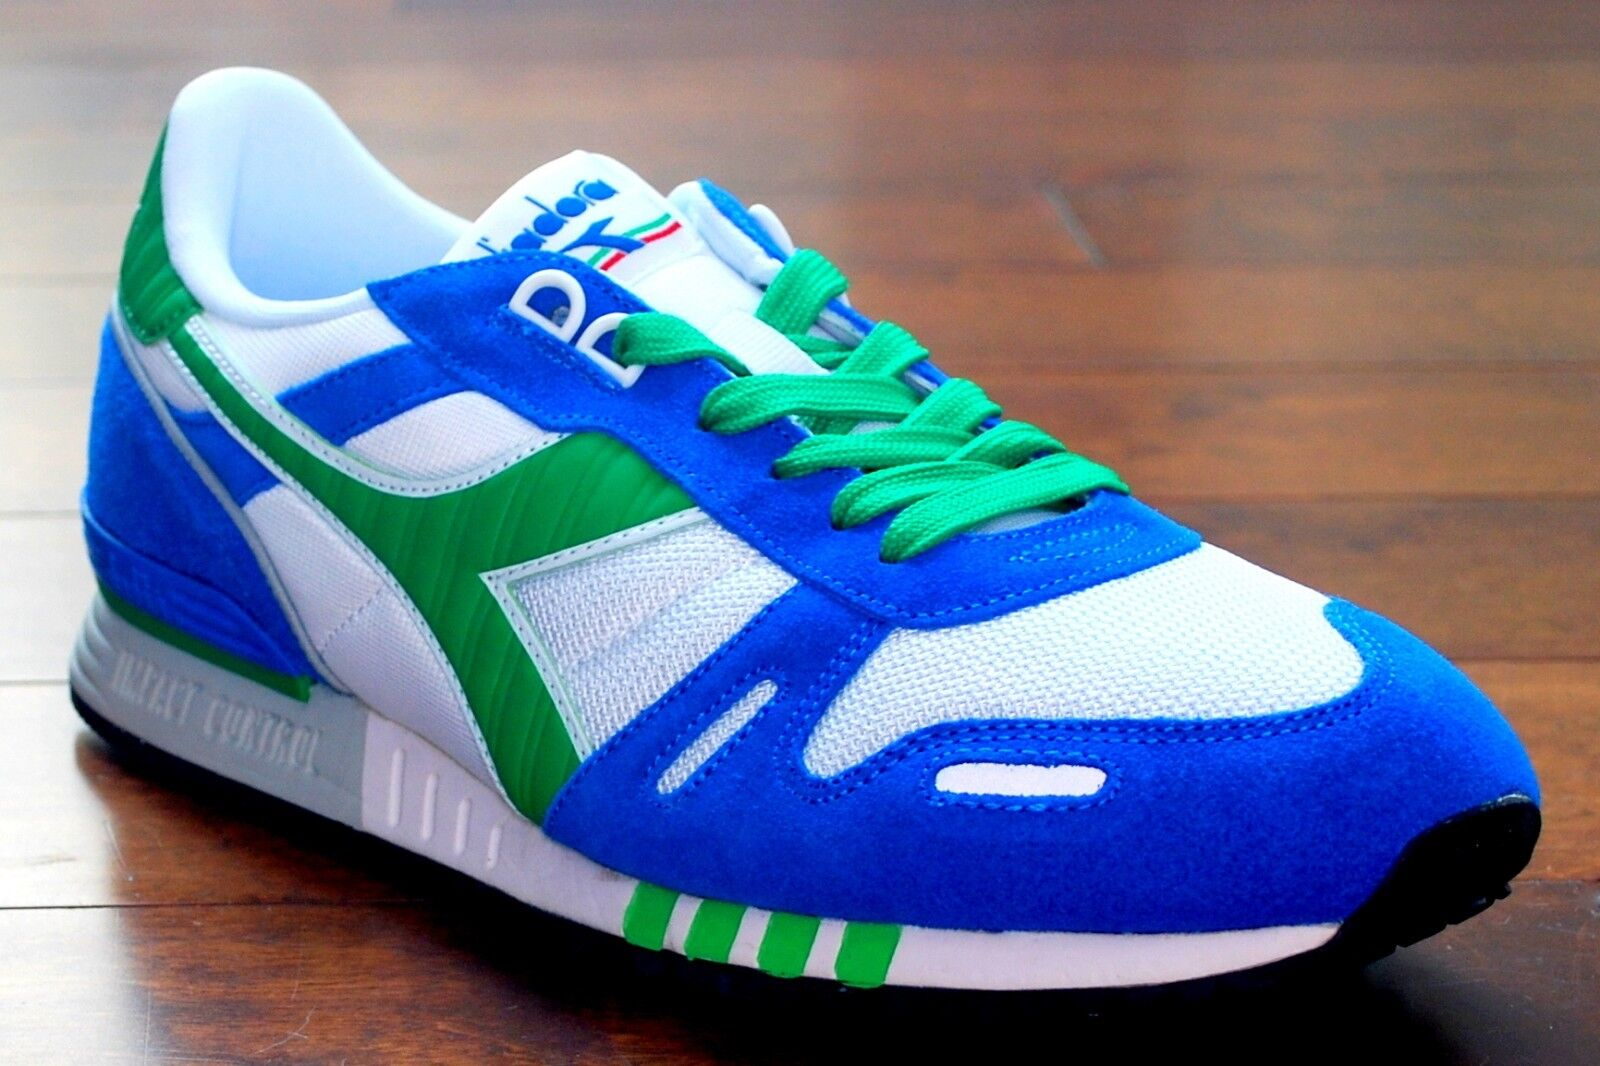 RARE Diadora Titan 2 White   Green-bluee Running shoes Men's SIZE 10 NIB